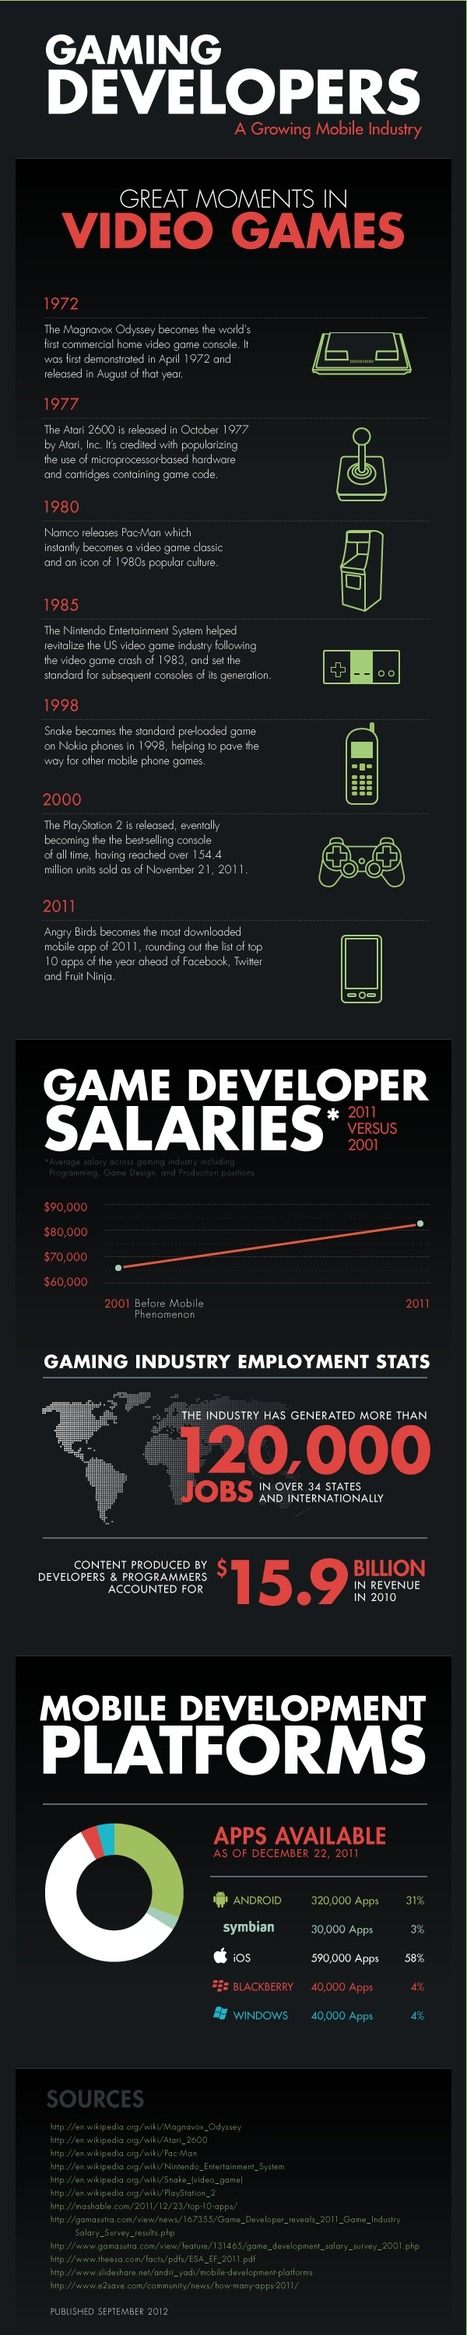 INFOGRAPHIC: Mobile Gaming - A Growing Industry | All Around Technology | Scoop.it